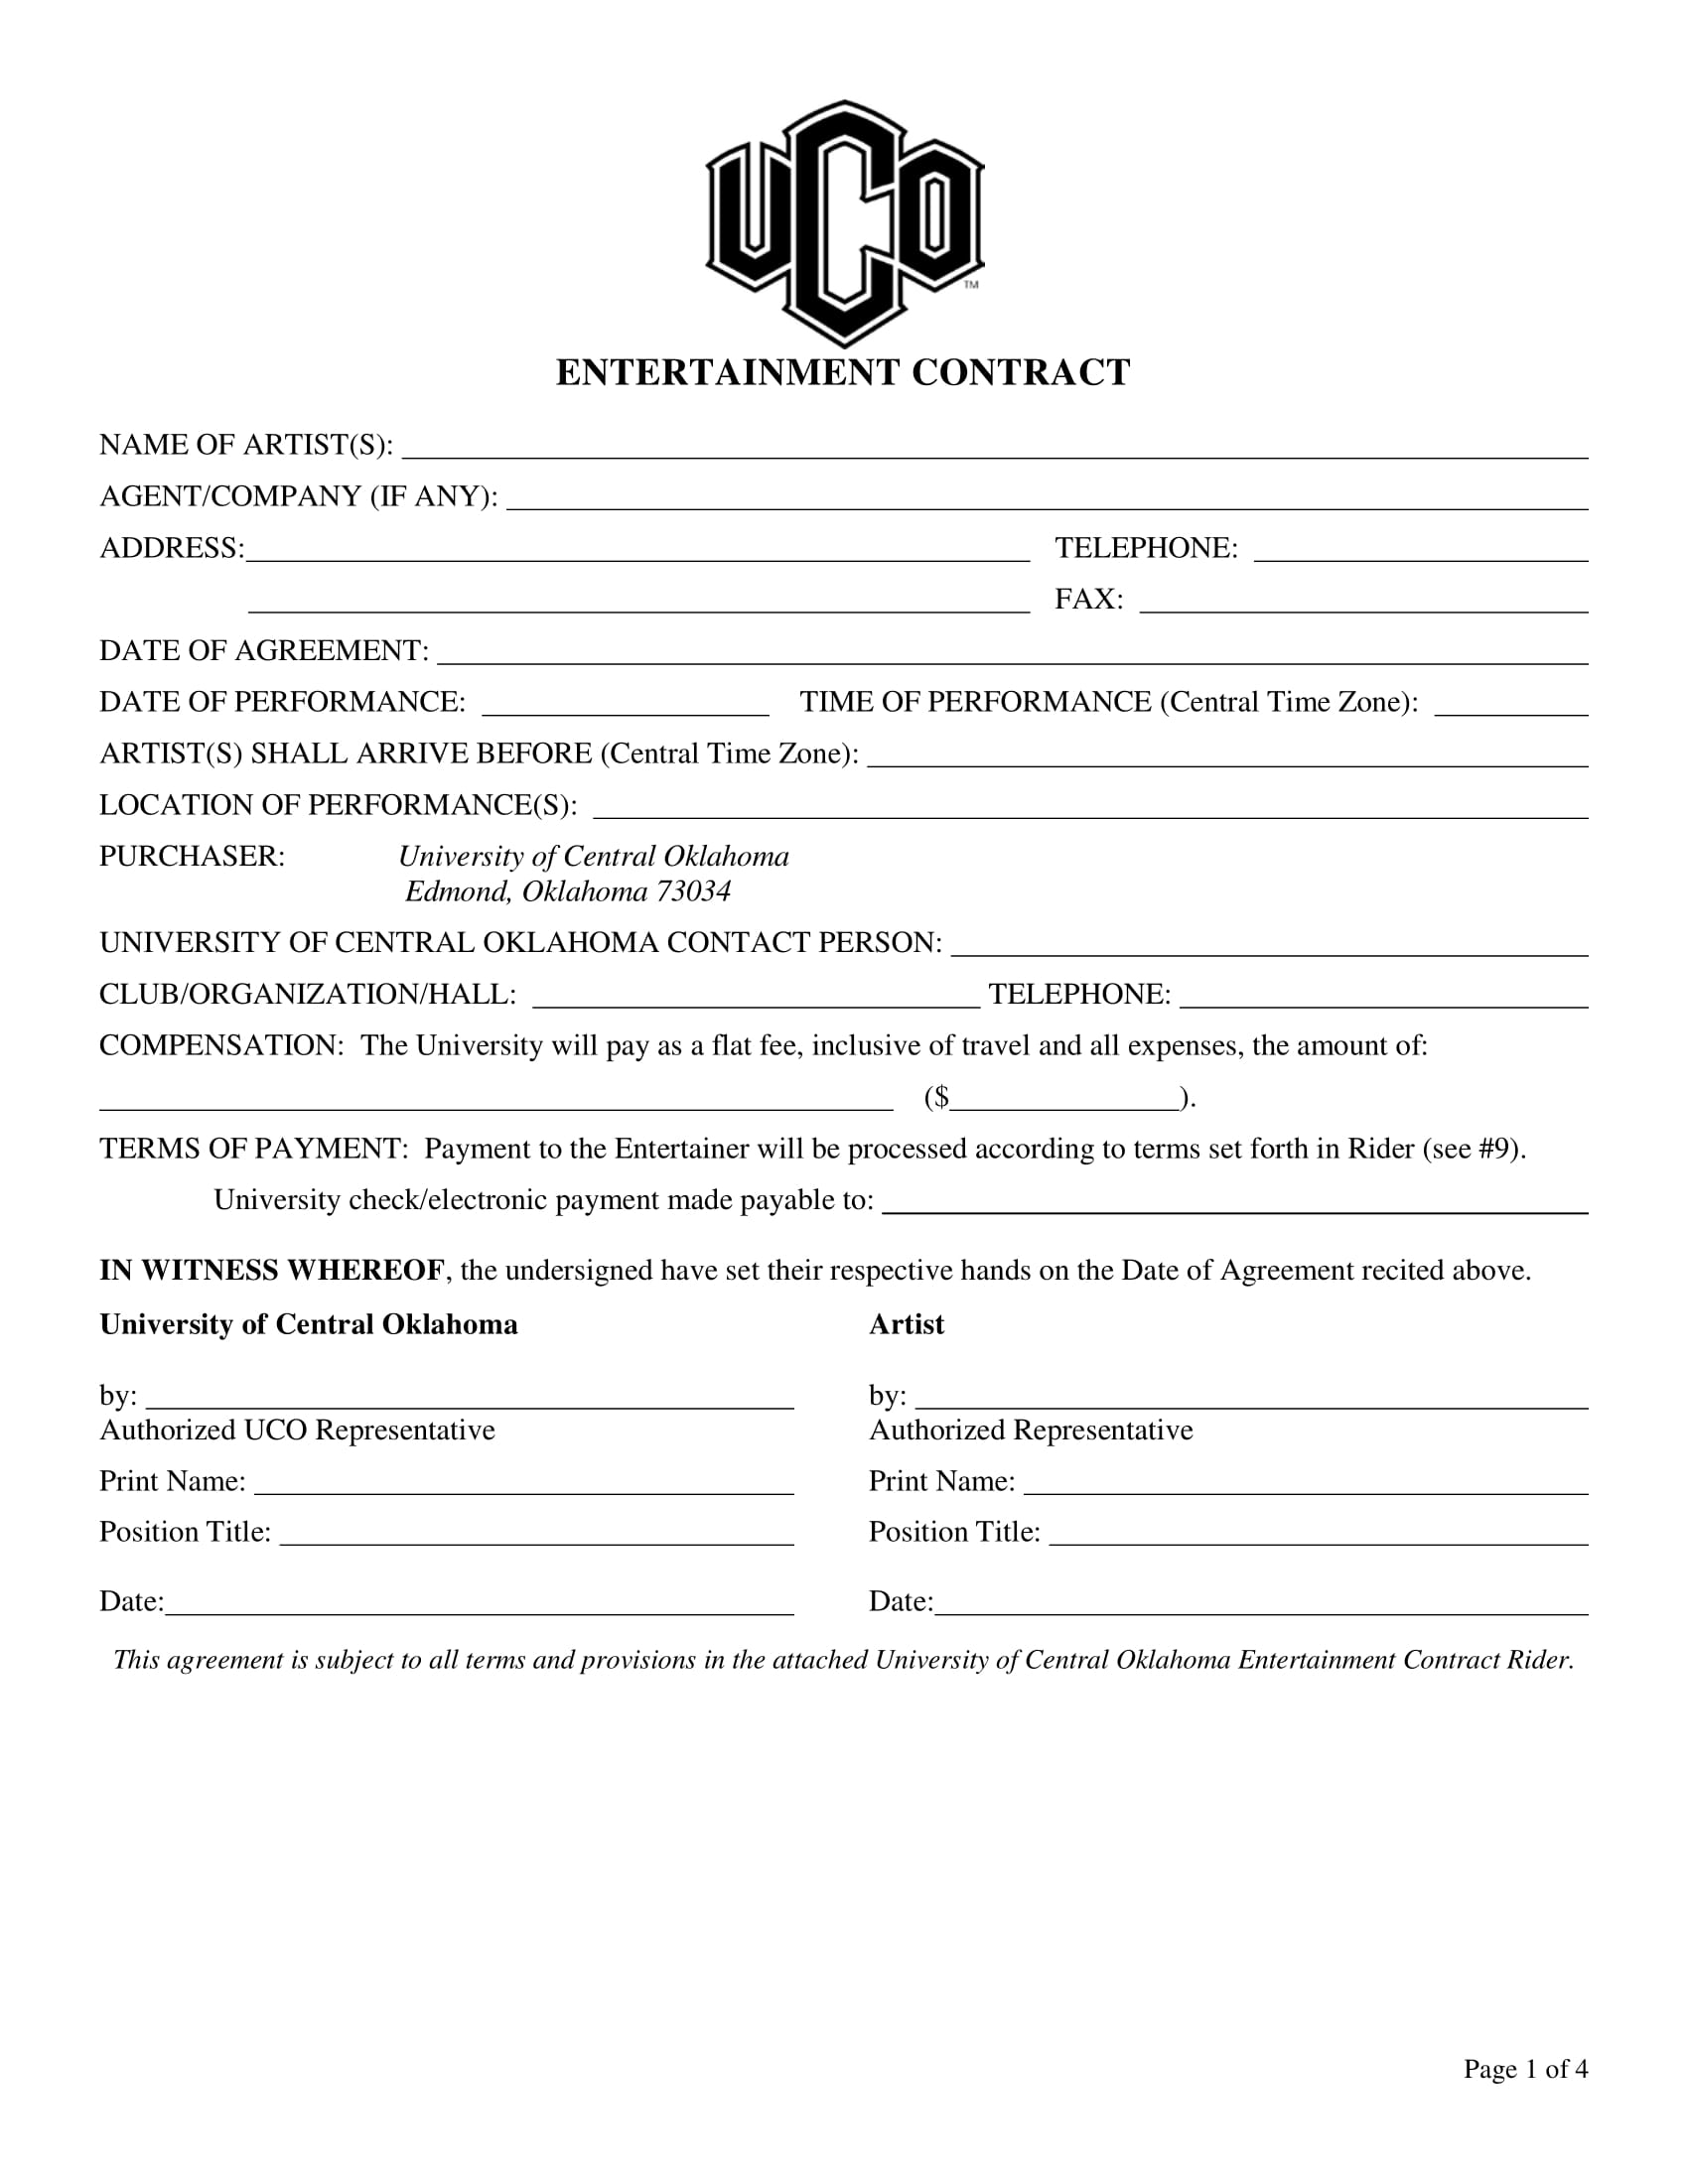 entertainment contract form sample 1